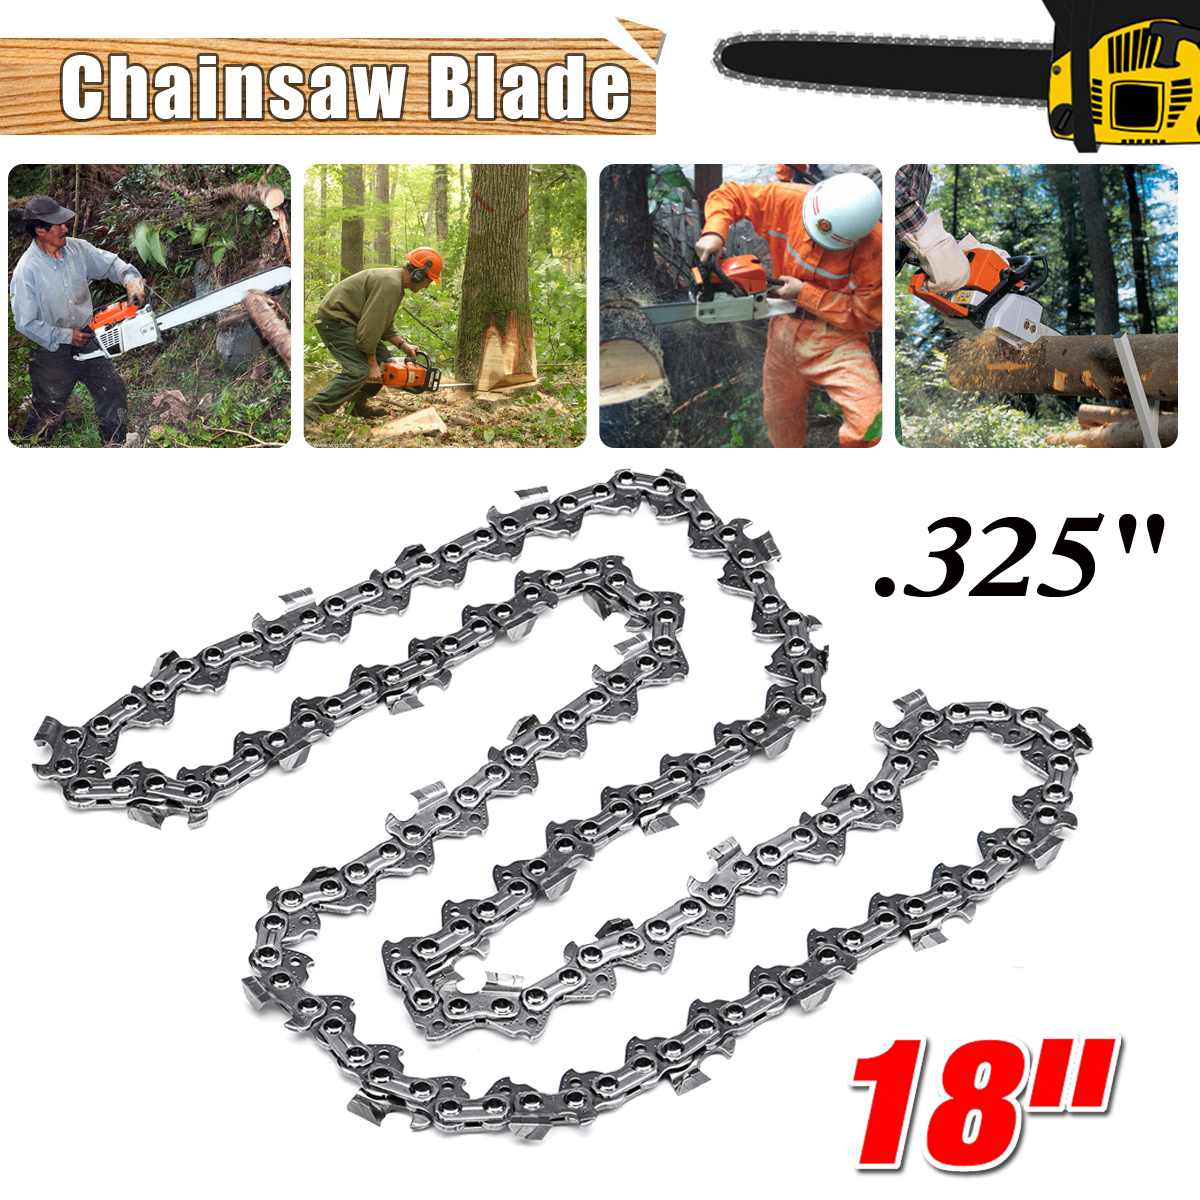 New 18 inch Chainsaw Chain 68 Link Bar 1.6mm x 0.325